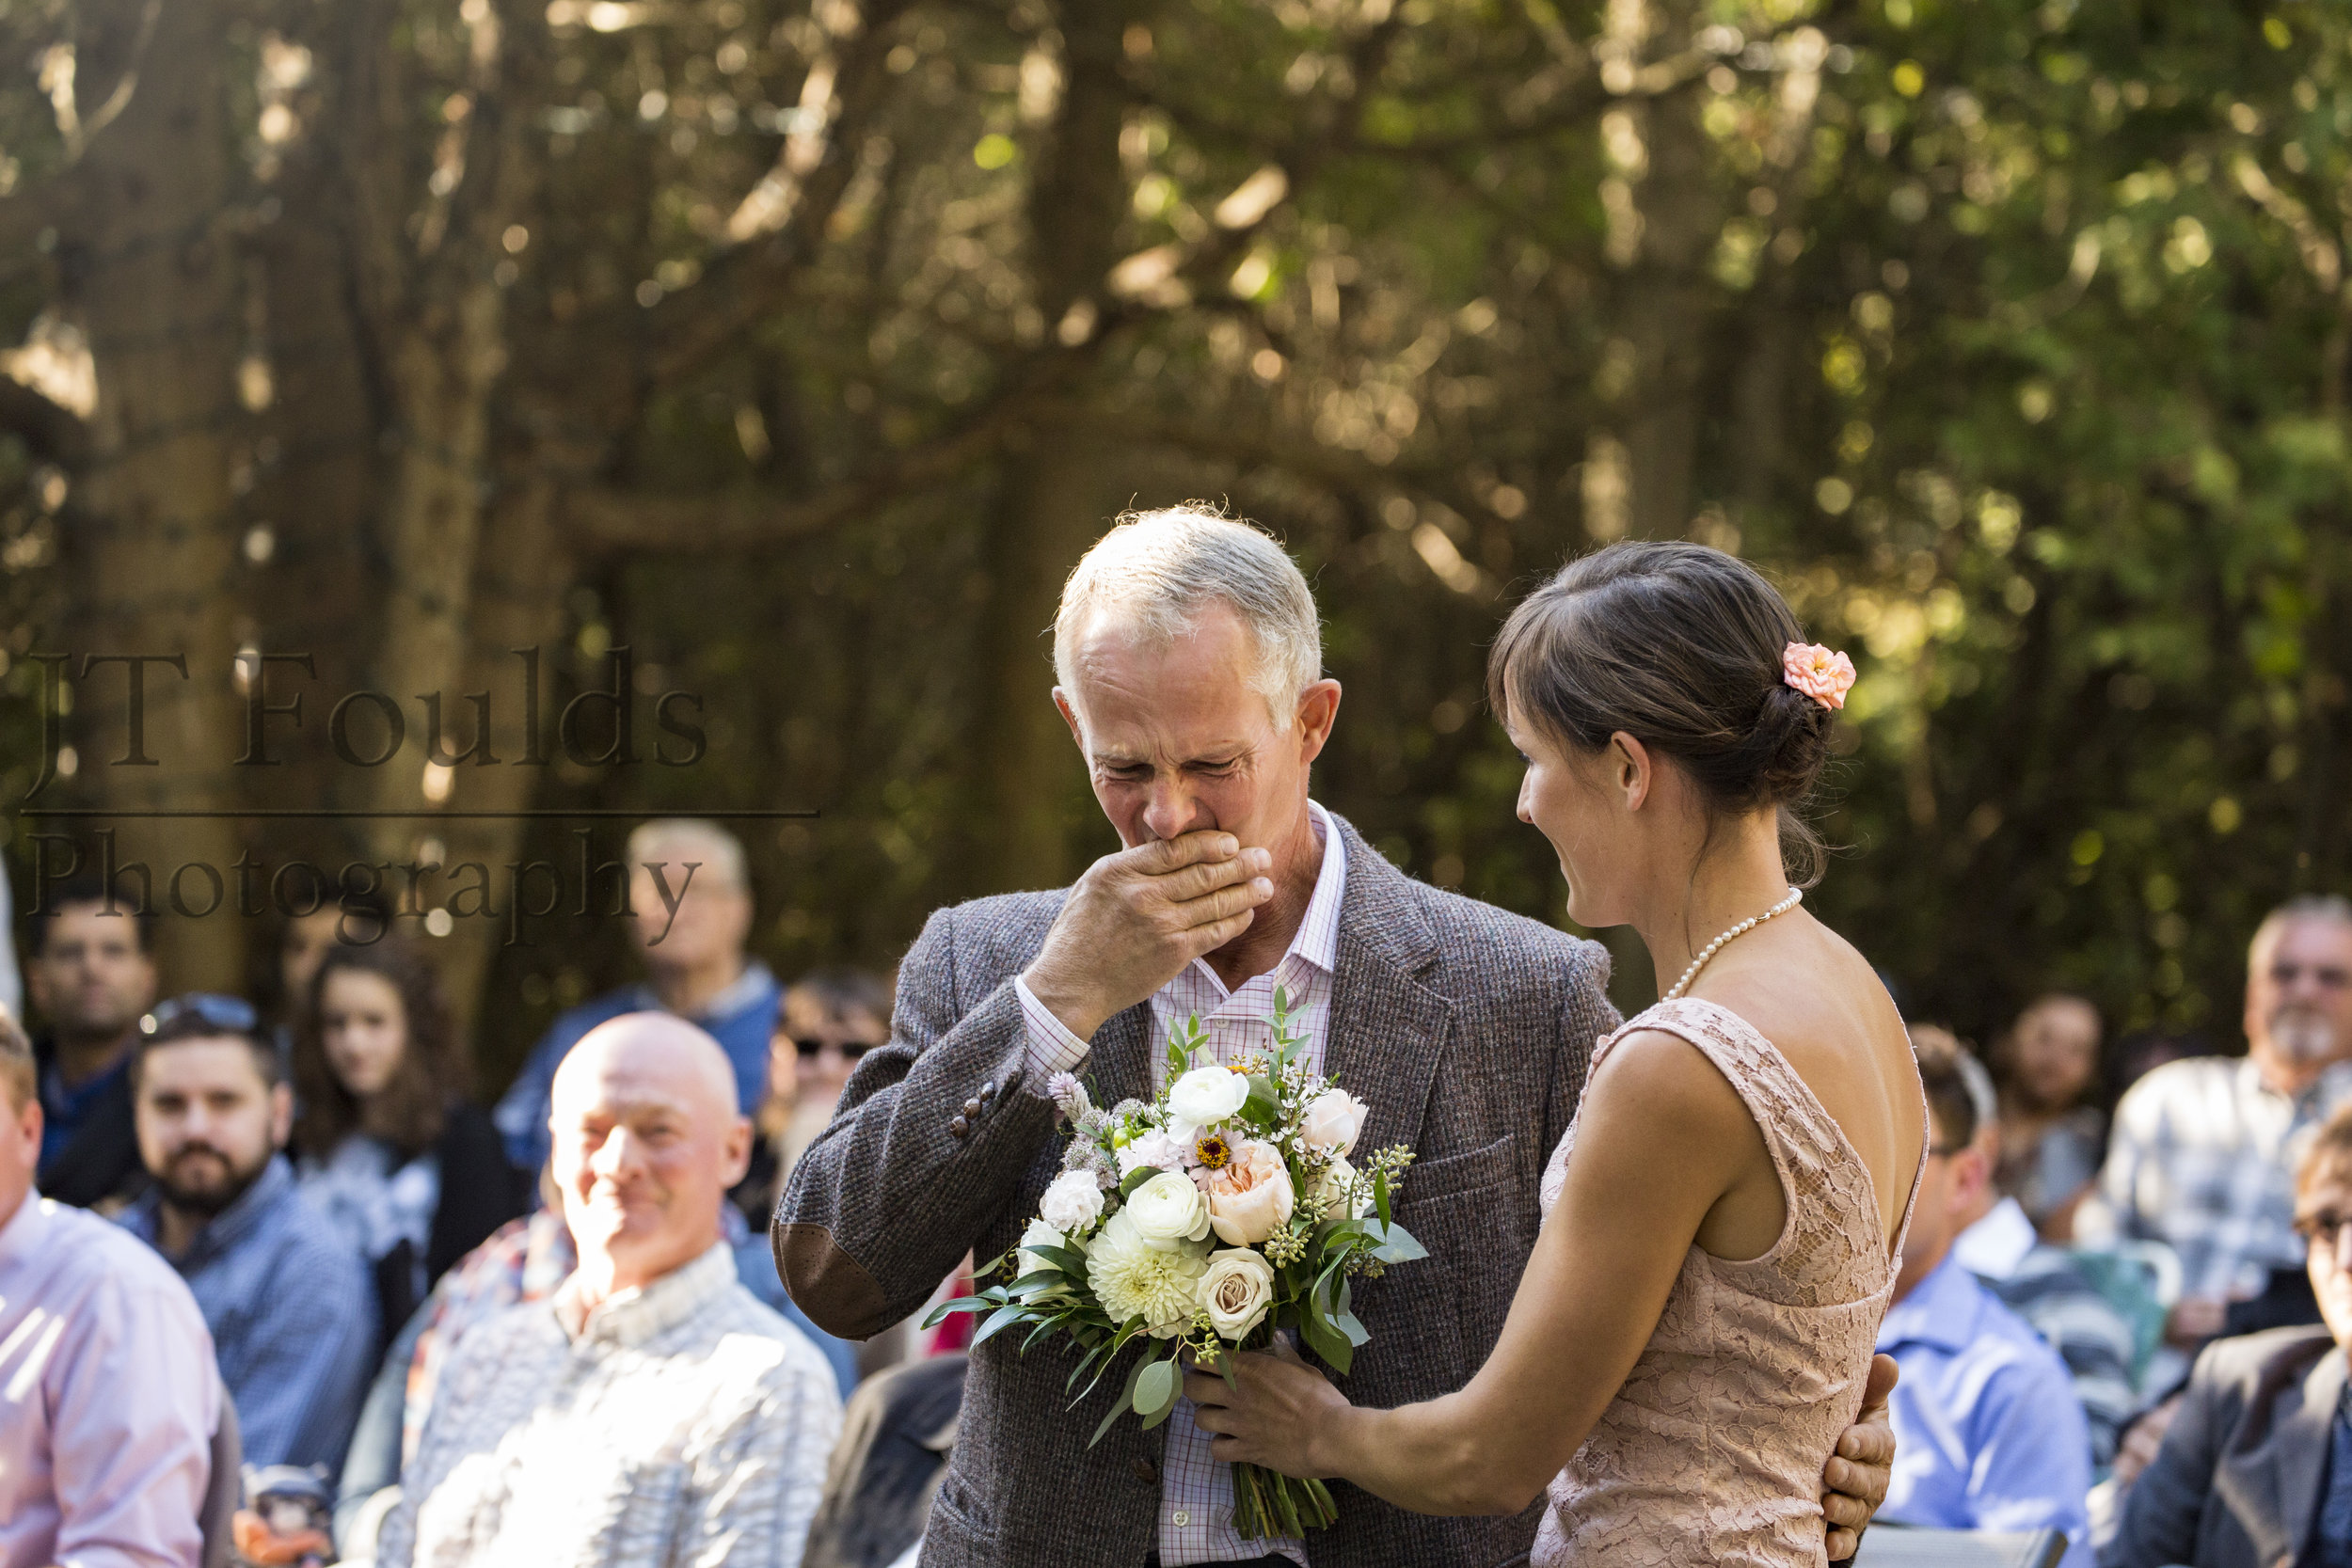 Banfield-Walcott Wedding - 24 SEP 2016 - 128 - It Begins (WM).JPG